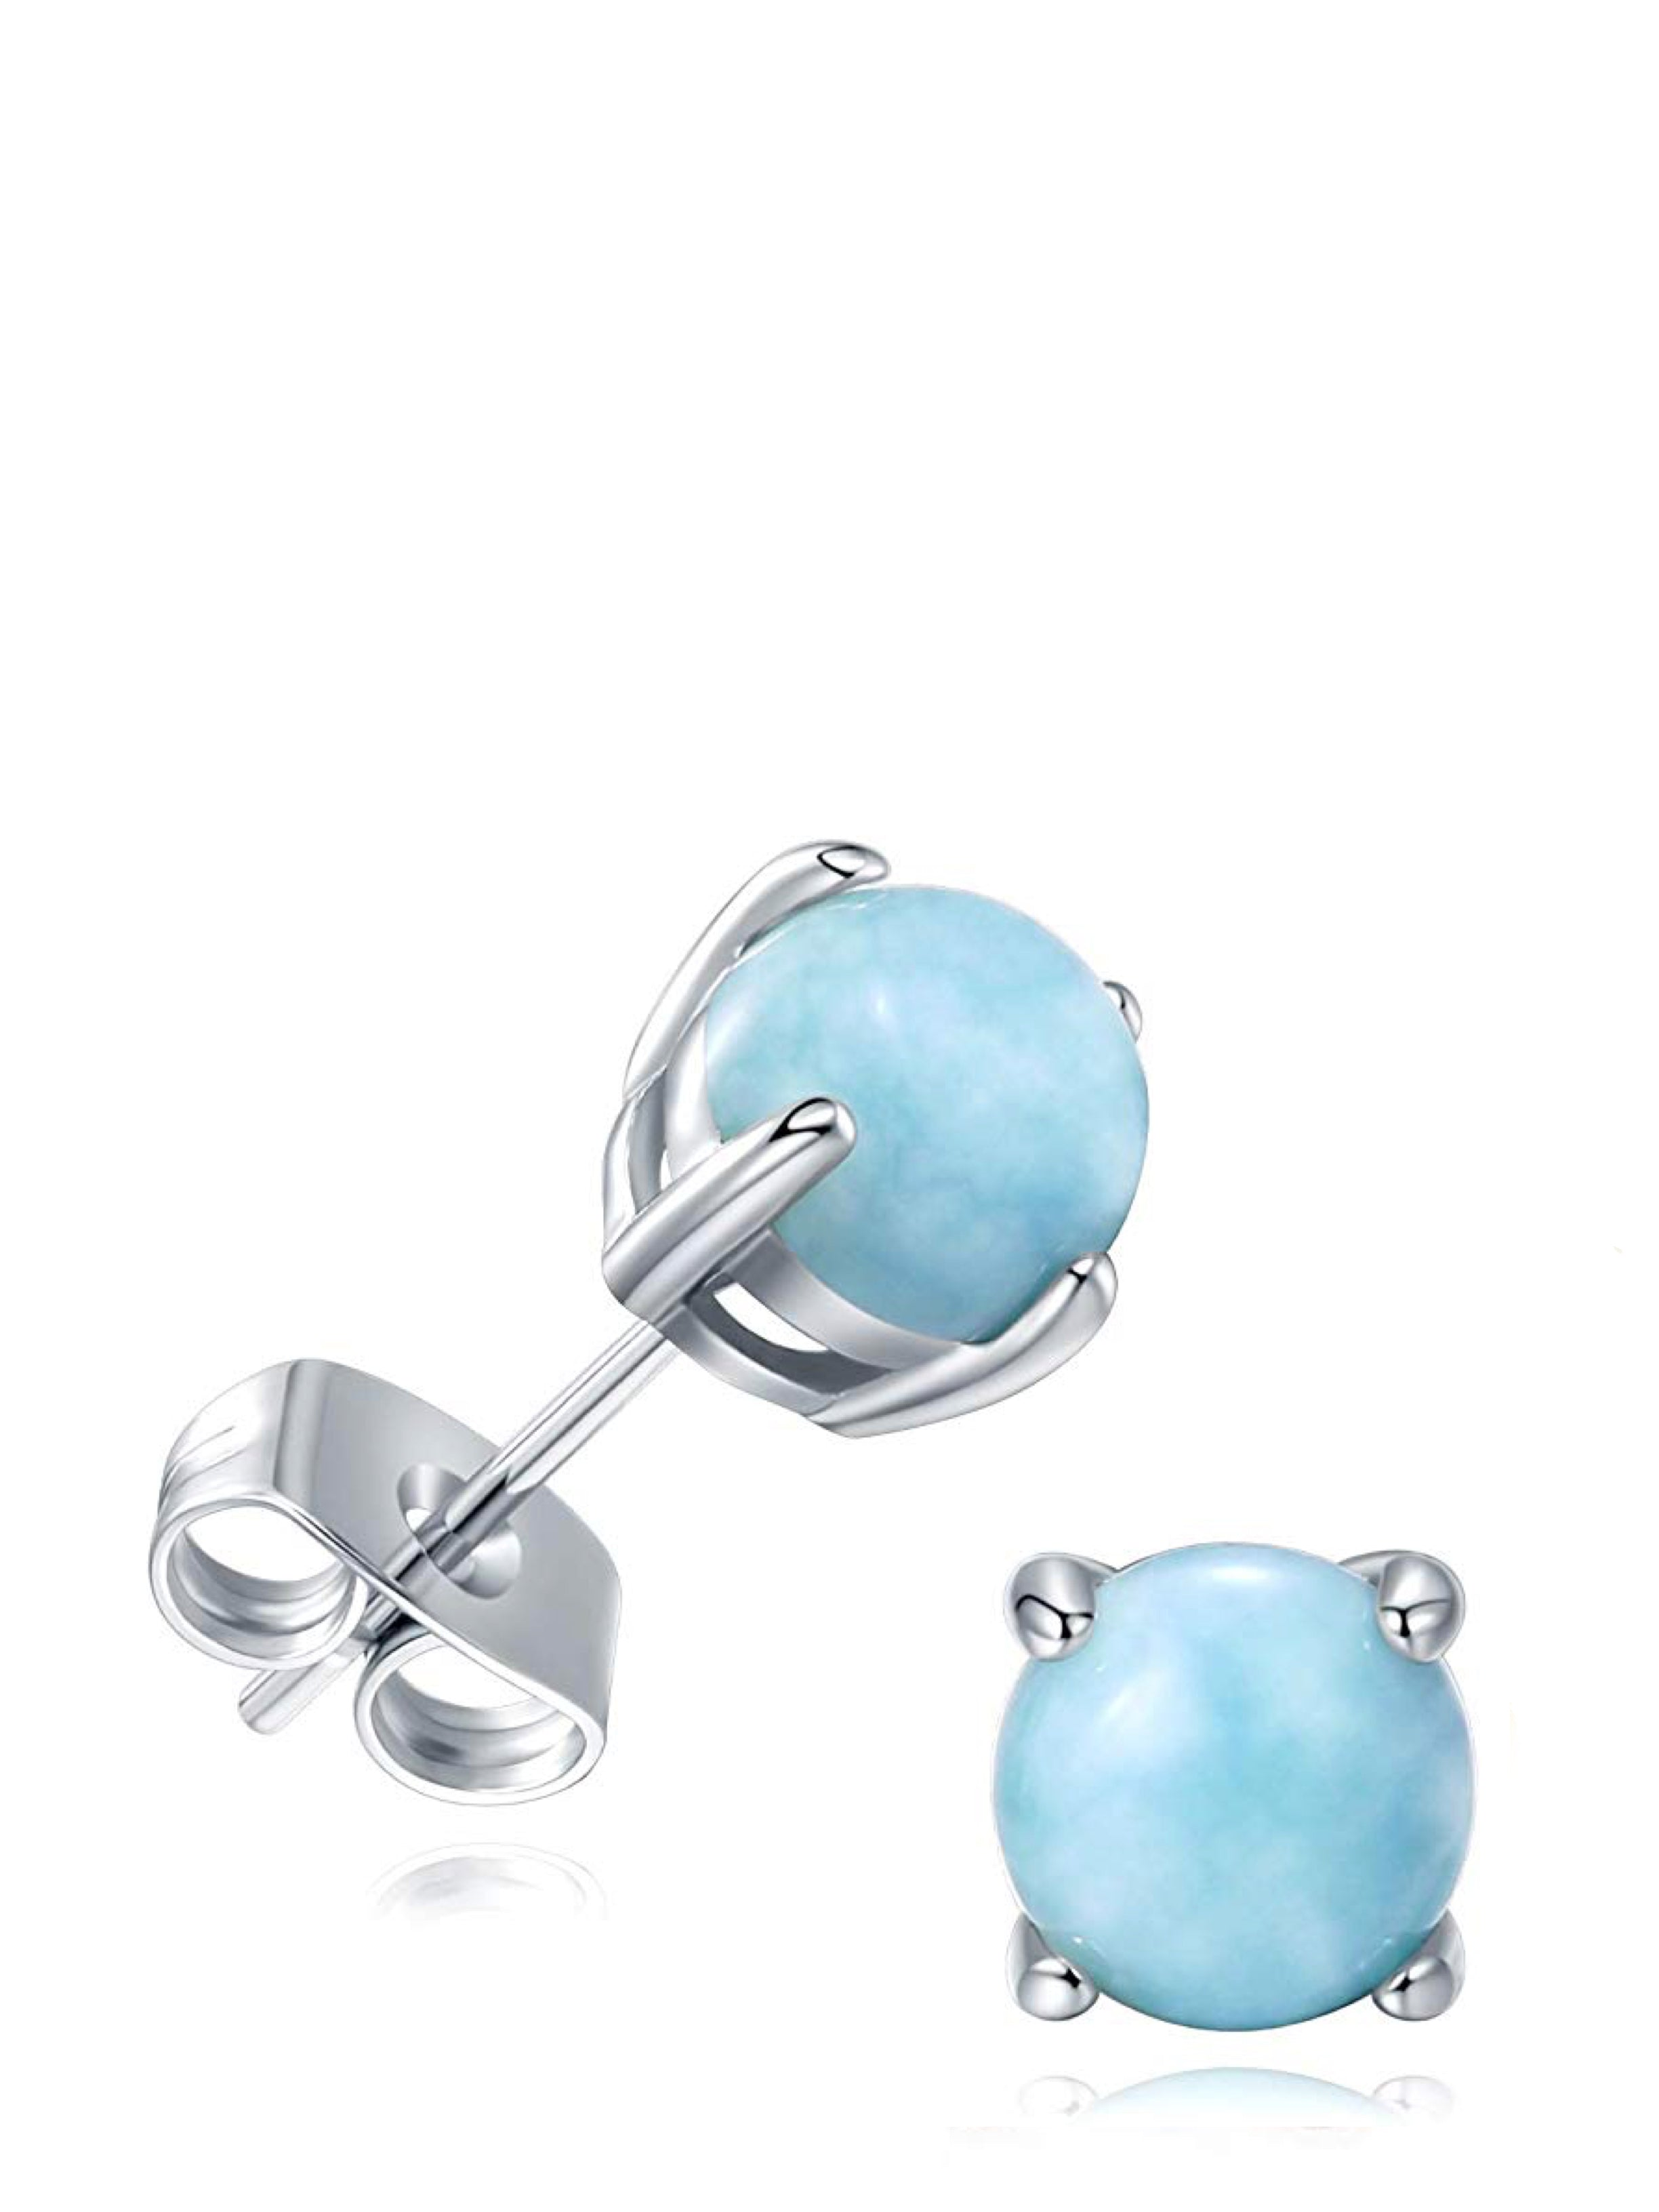 STERLING SILVER LARIMAR GEMSTONE STUD EARRINGS